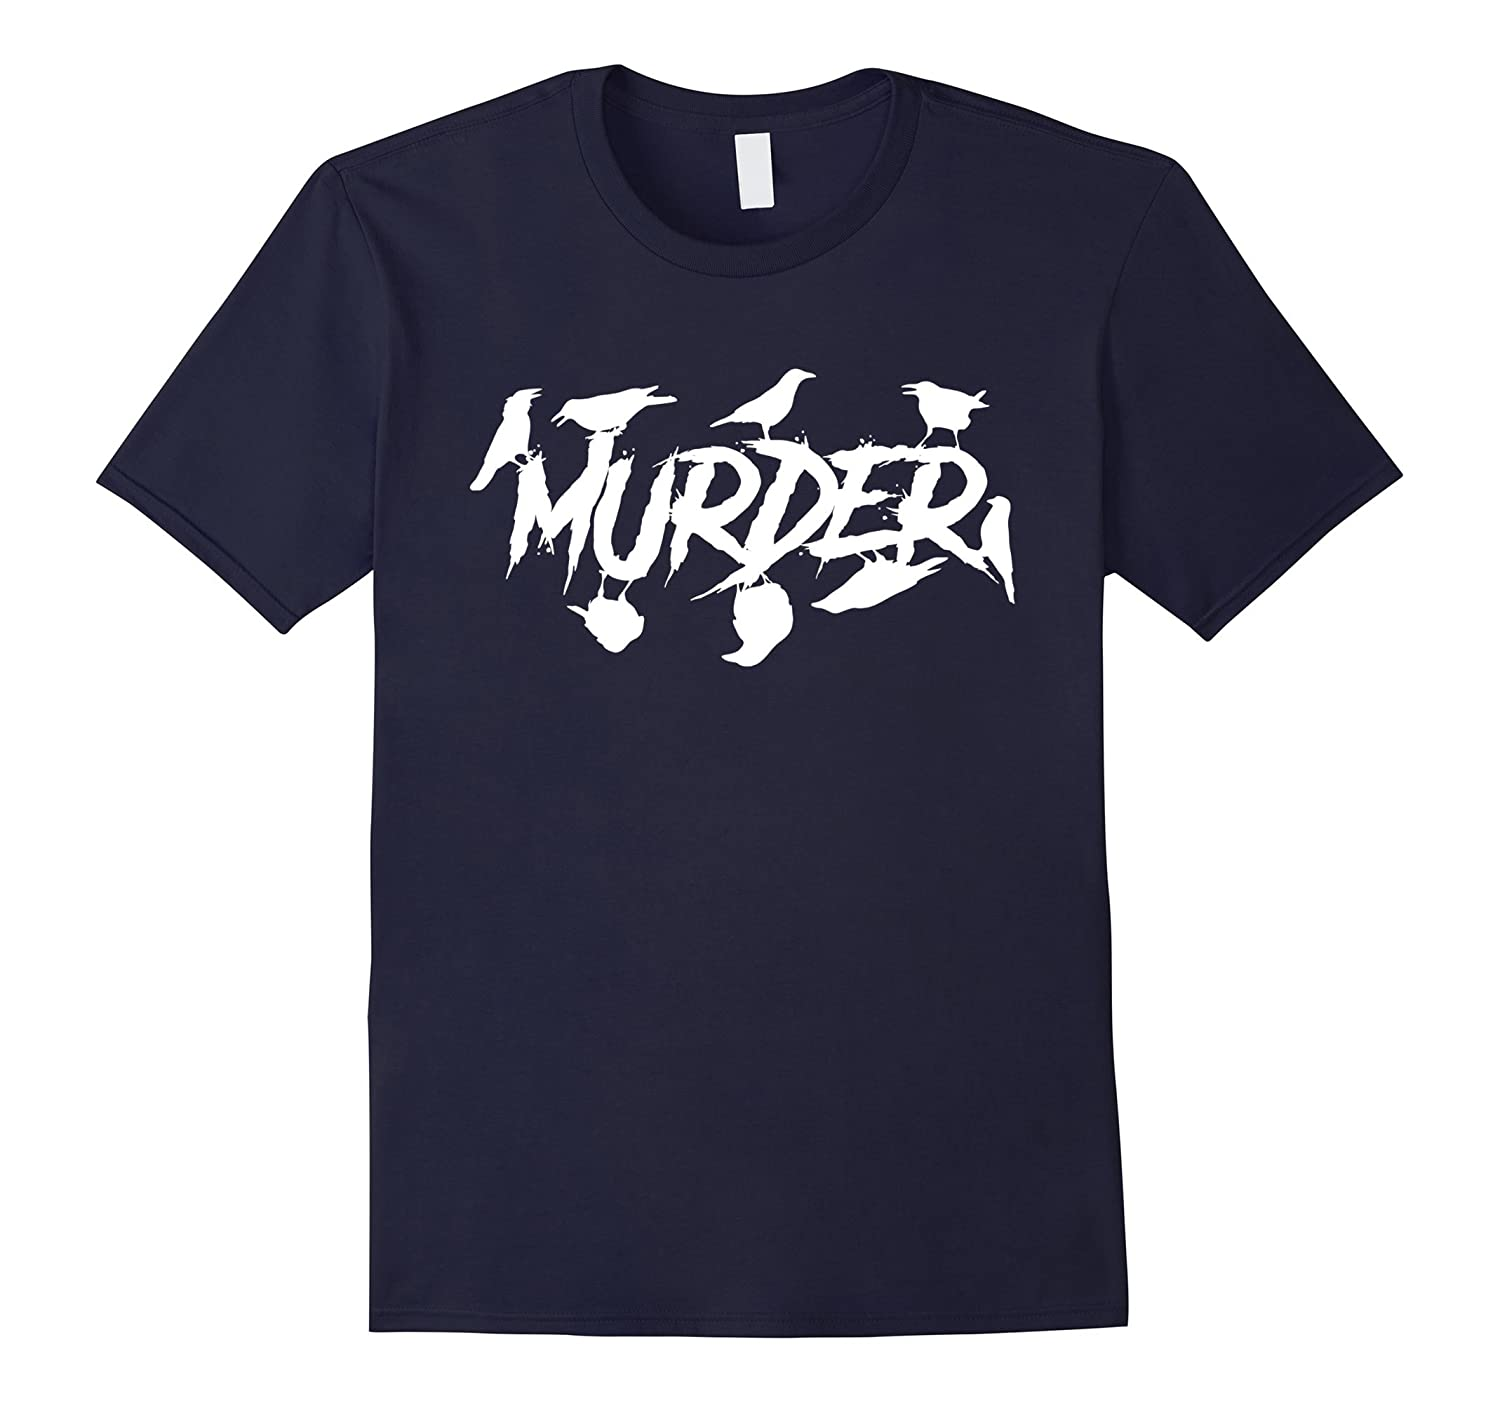 Murder of Crows funny graphic tee shirt horror style-FL